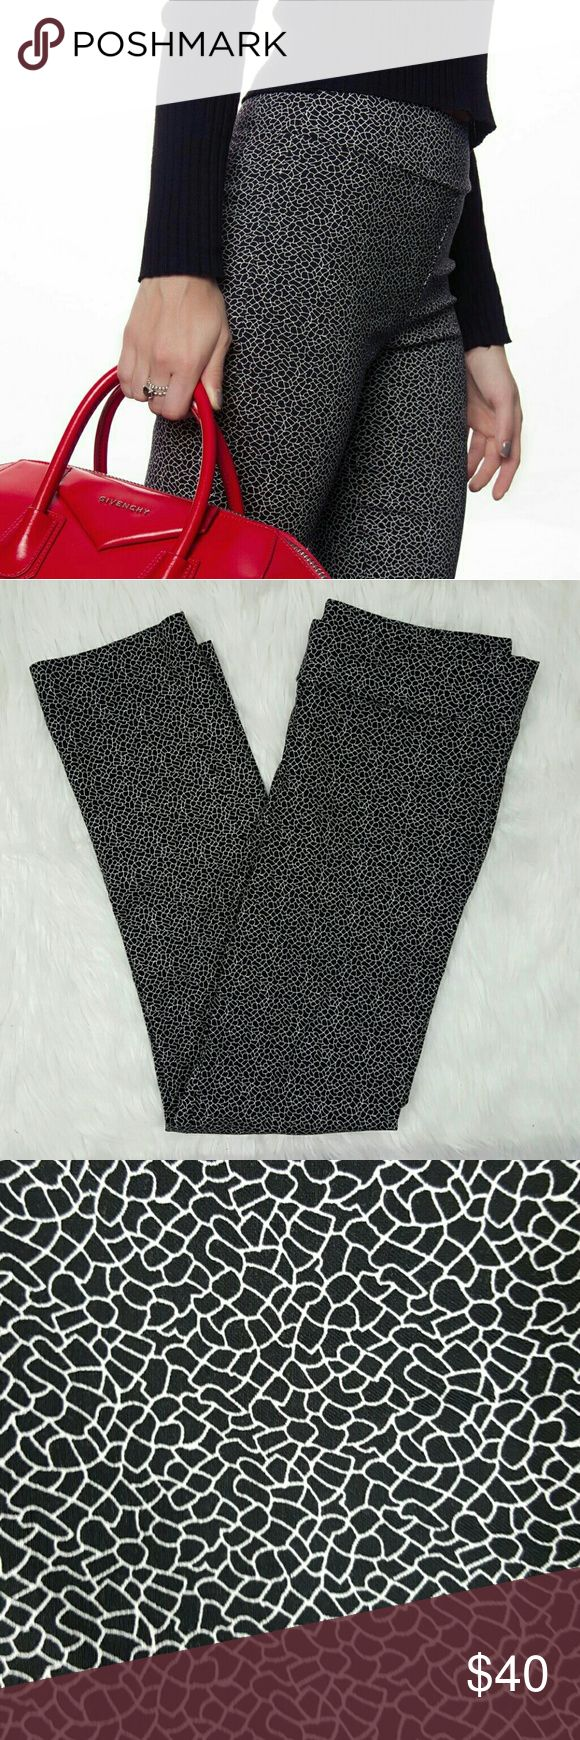 Margaret M Slimming Pant, L These ultra comfortable slimming pants by Margaret M are going to revolutionize your wardrobe!  Size Large (Sz. 12-14).  Made in Canada.  Stitch fix engineering that provides a slight tummy tuck feature at waist, stretchy material that forms to your body, and a smooth finished look.  Wear with a blouse and cardigan or blazer for work or pair with a simple tee for a casual weekend look.  Waist-15.5 inches.  Hips-16 inches.  Inseam-26.5 inches.  These pants are in…